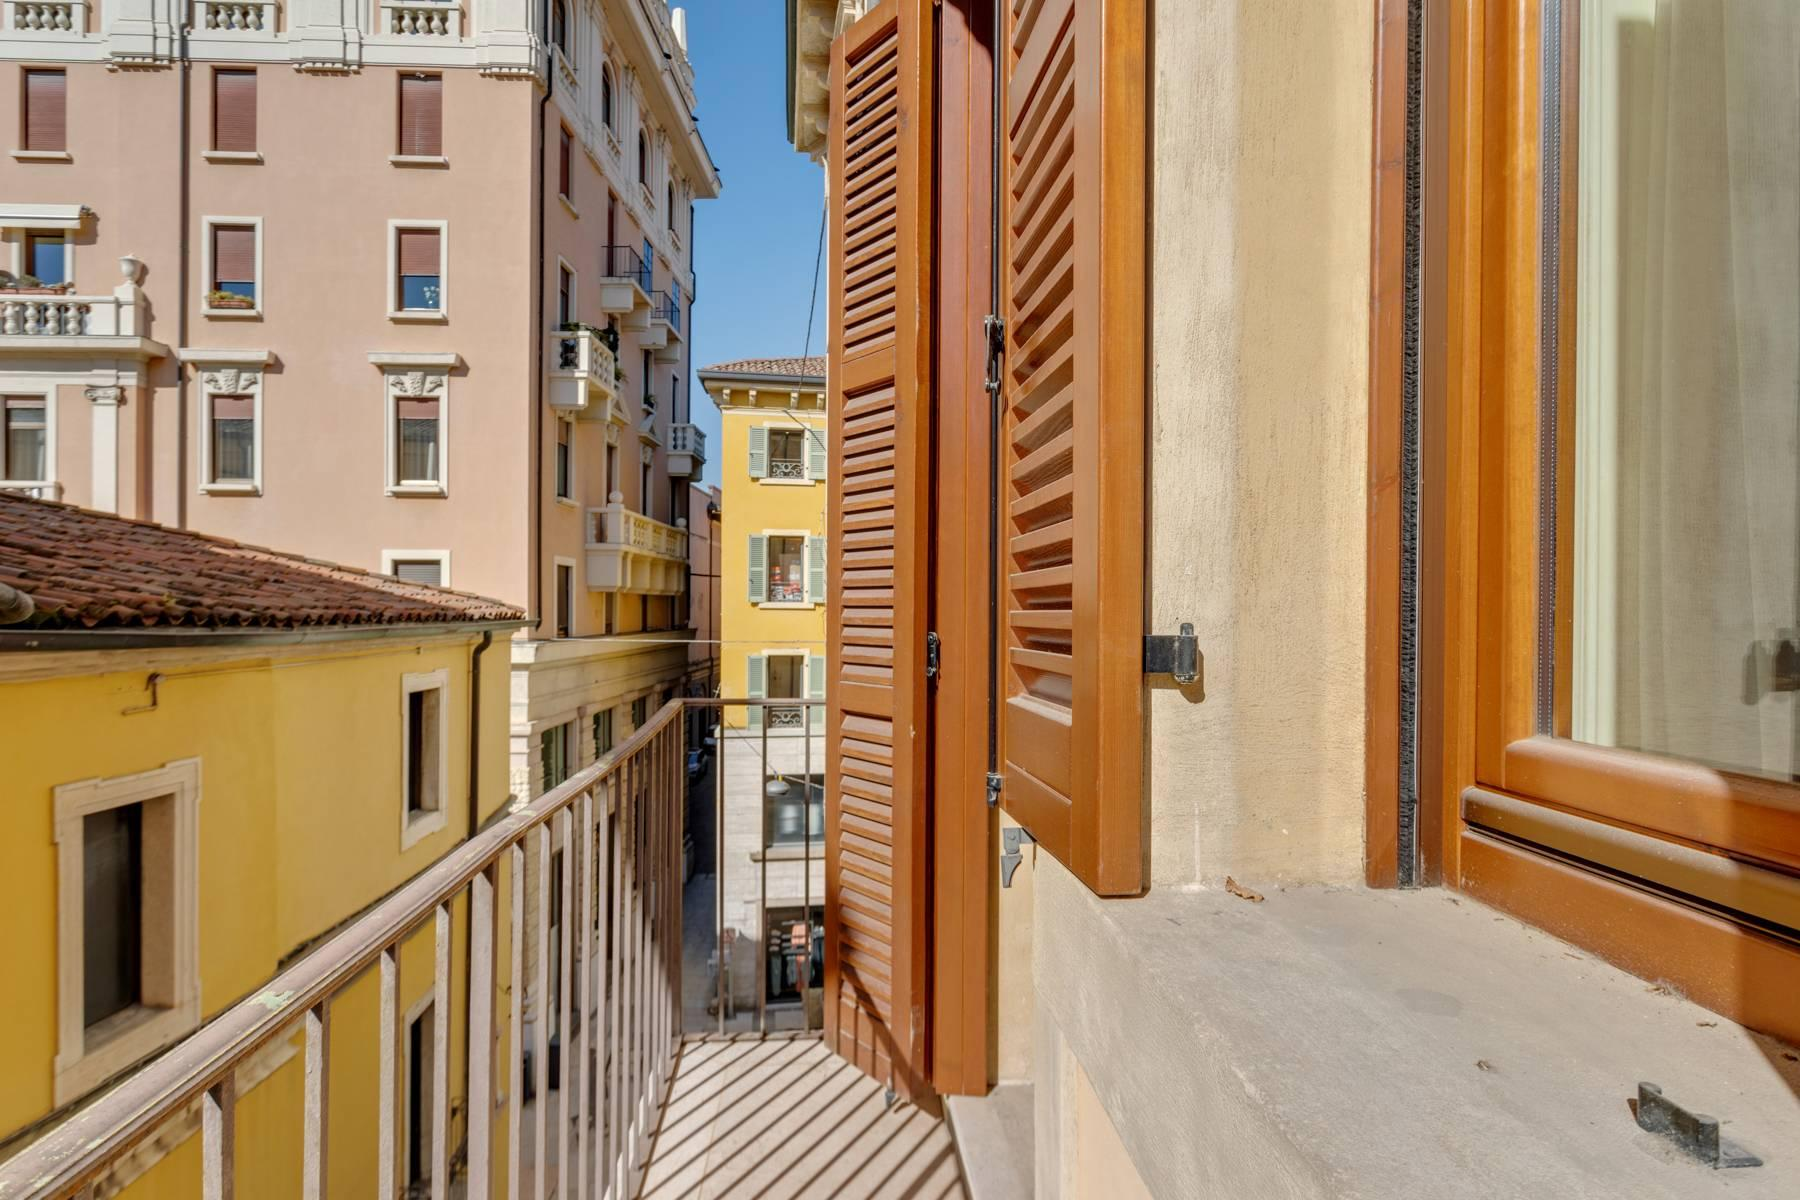 Exquisite apartment just few steps away from Piazza delle Erbe - 16